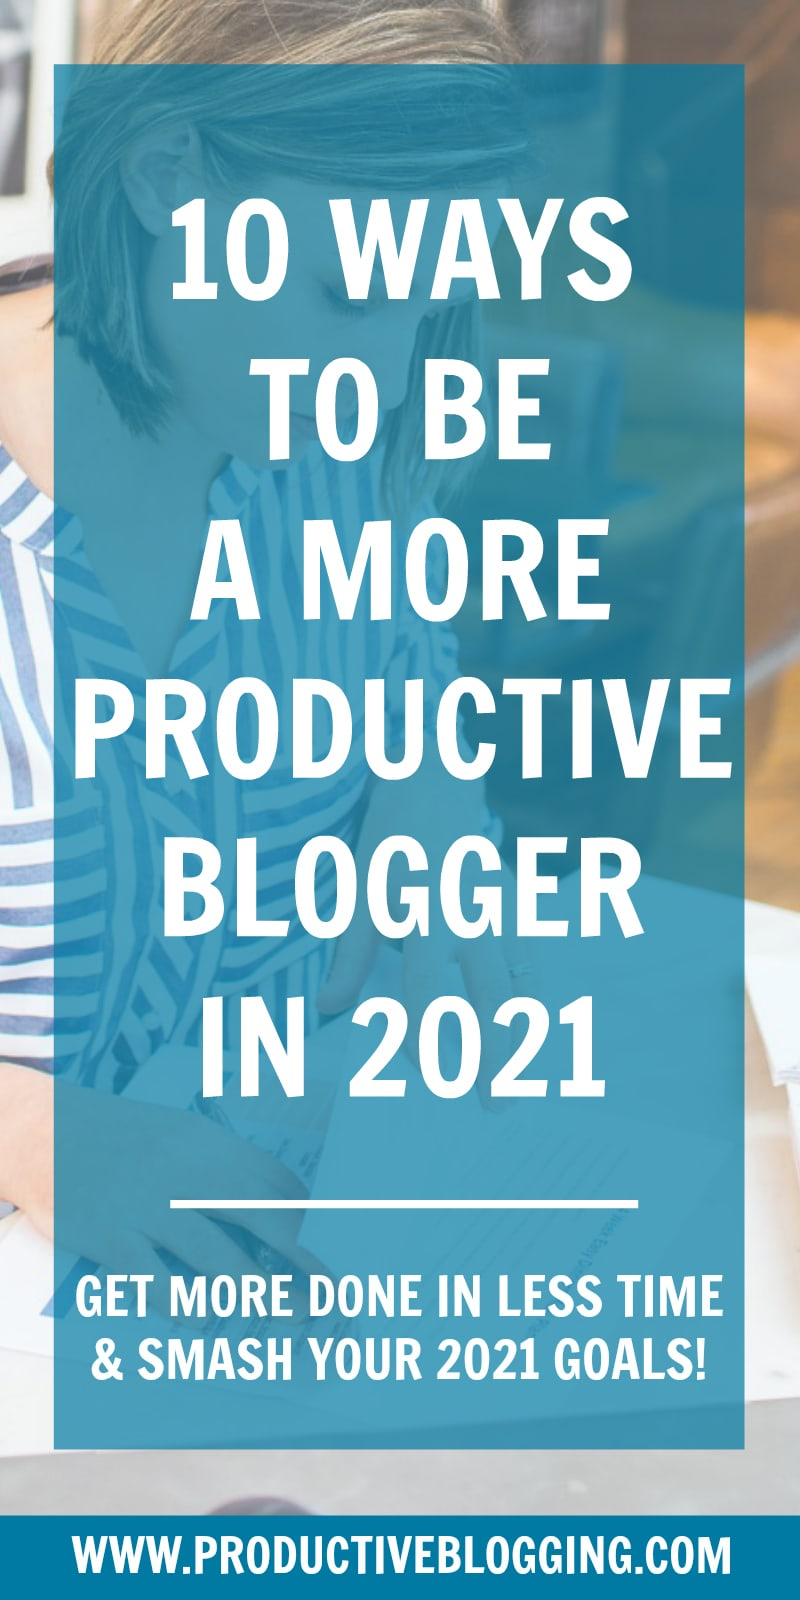 Want to achieve your blogging goals in 2021? Want to get more done in less time on your blog? Here are 10 ways to be a more productive blogger in 2021… #productiveblogger #productivity #productiveblogging #productivitytips #productivityhacks #bloggingtips #blogginghacks #blogginggoals #bloggoals #goalsetting #blogsmarter #blogsmarternotharder #BSNH